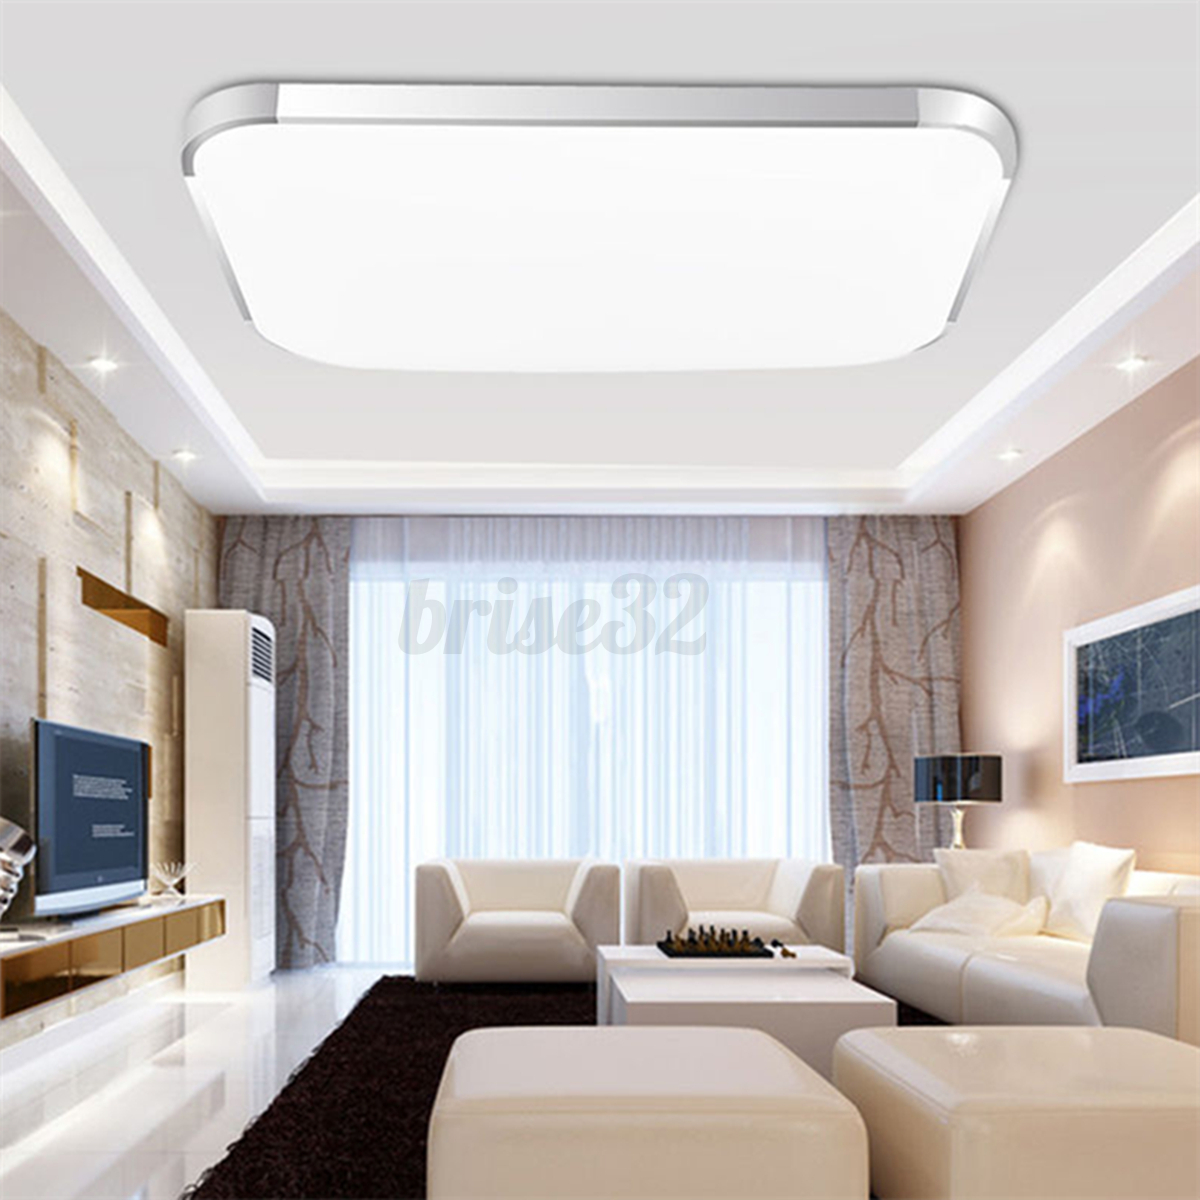 modern led square ceiling down light bedroom living room lamp surface mount new ebay. Black Bedroom Furniture Sets. Home Design Ideas